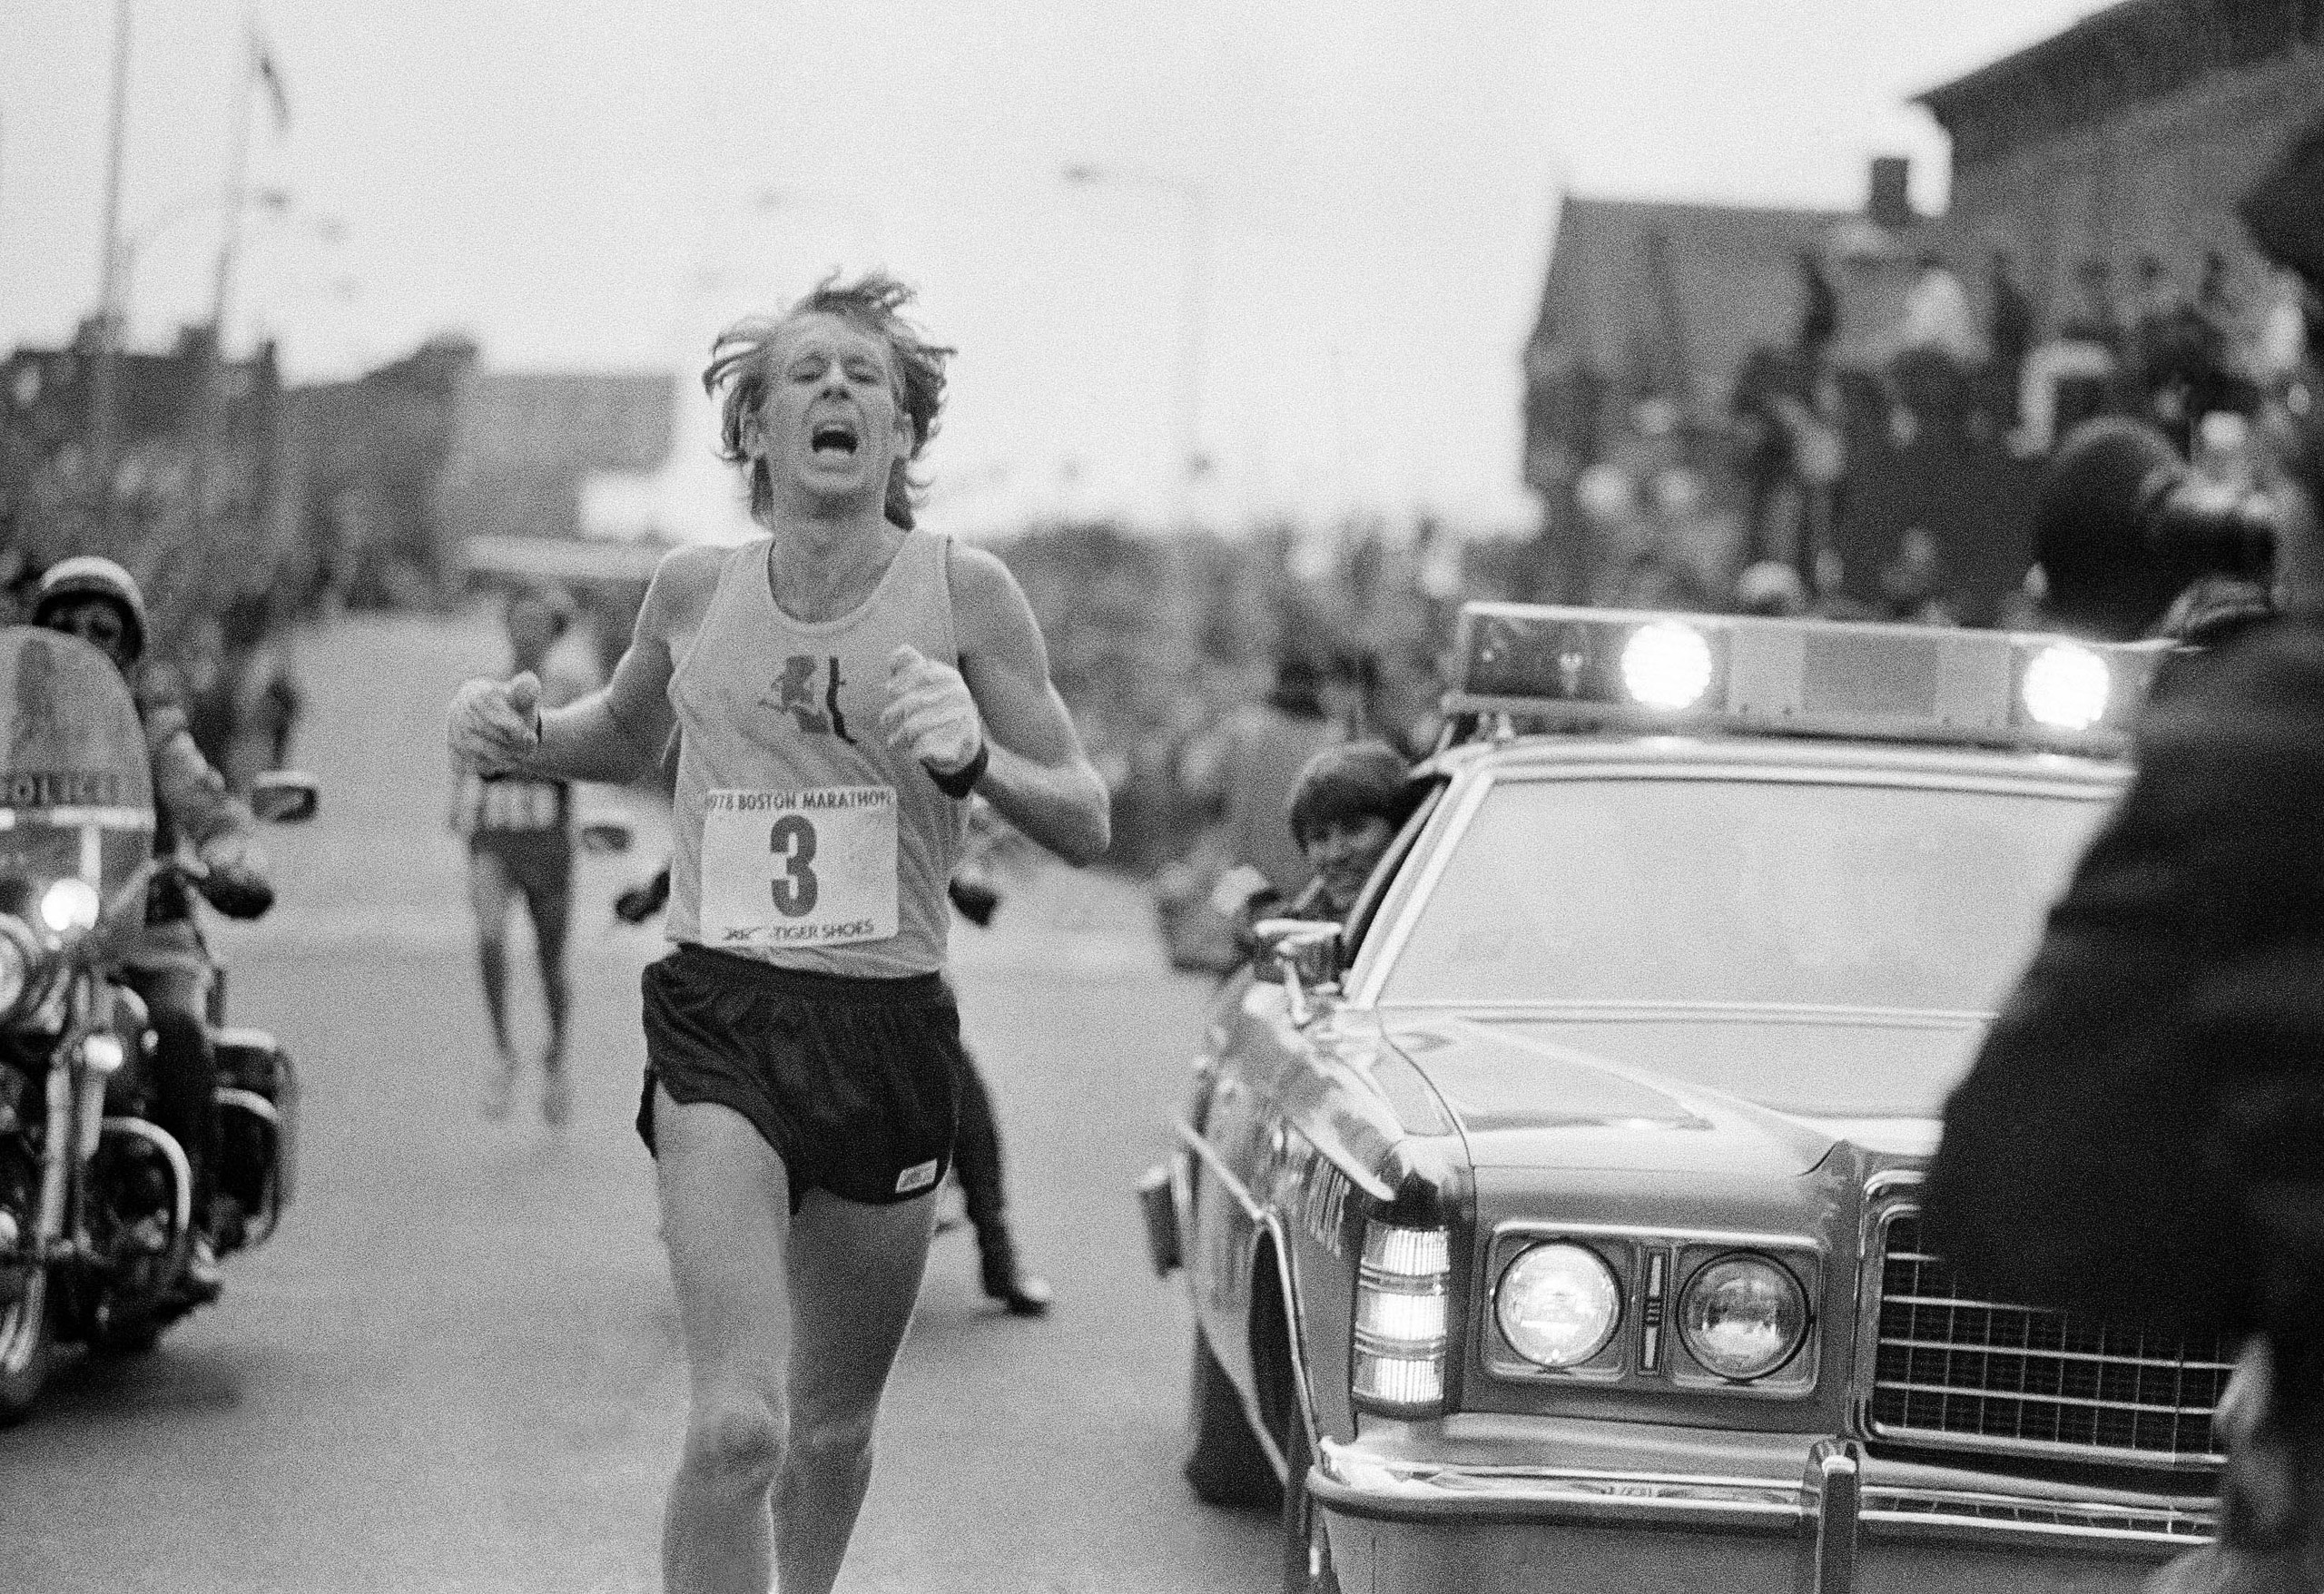 Bill Rodgers, of Melrose, Mass., crosses the finish line to win the Boston Marathon in Boston on April 17, 1978. Rodgers finished with an unofficial time of two hours, 10 minutes and 13 seconds. This was Rodgers' second marathon win.